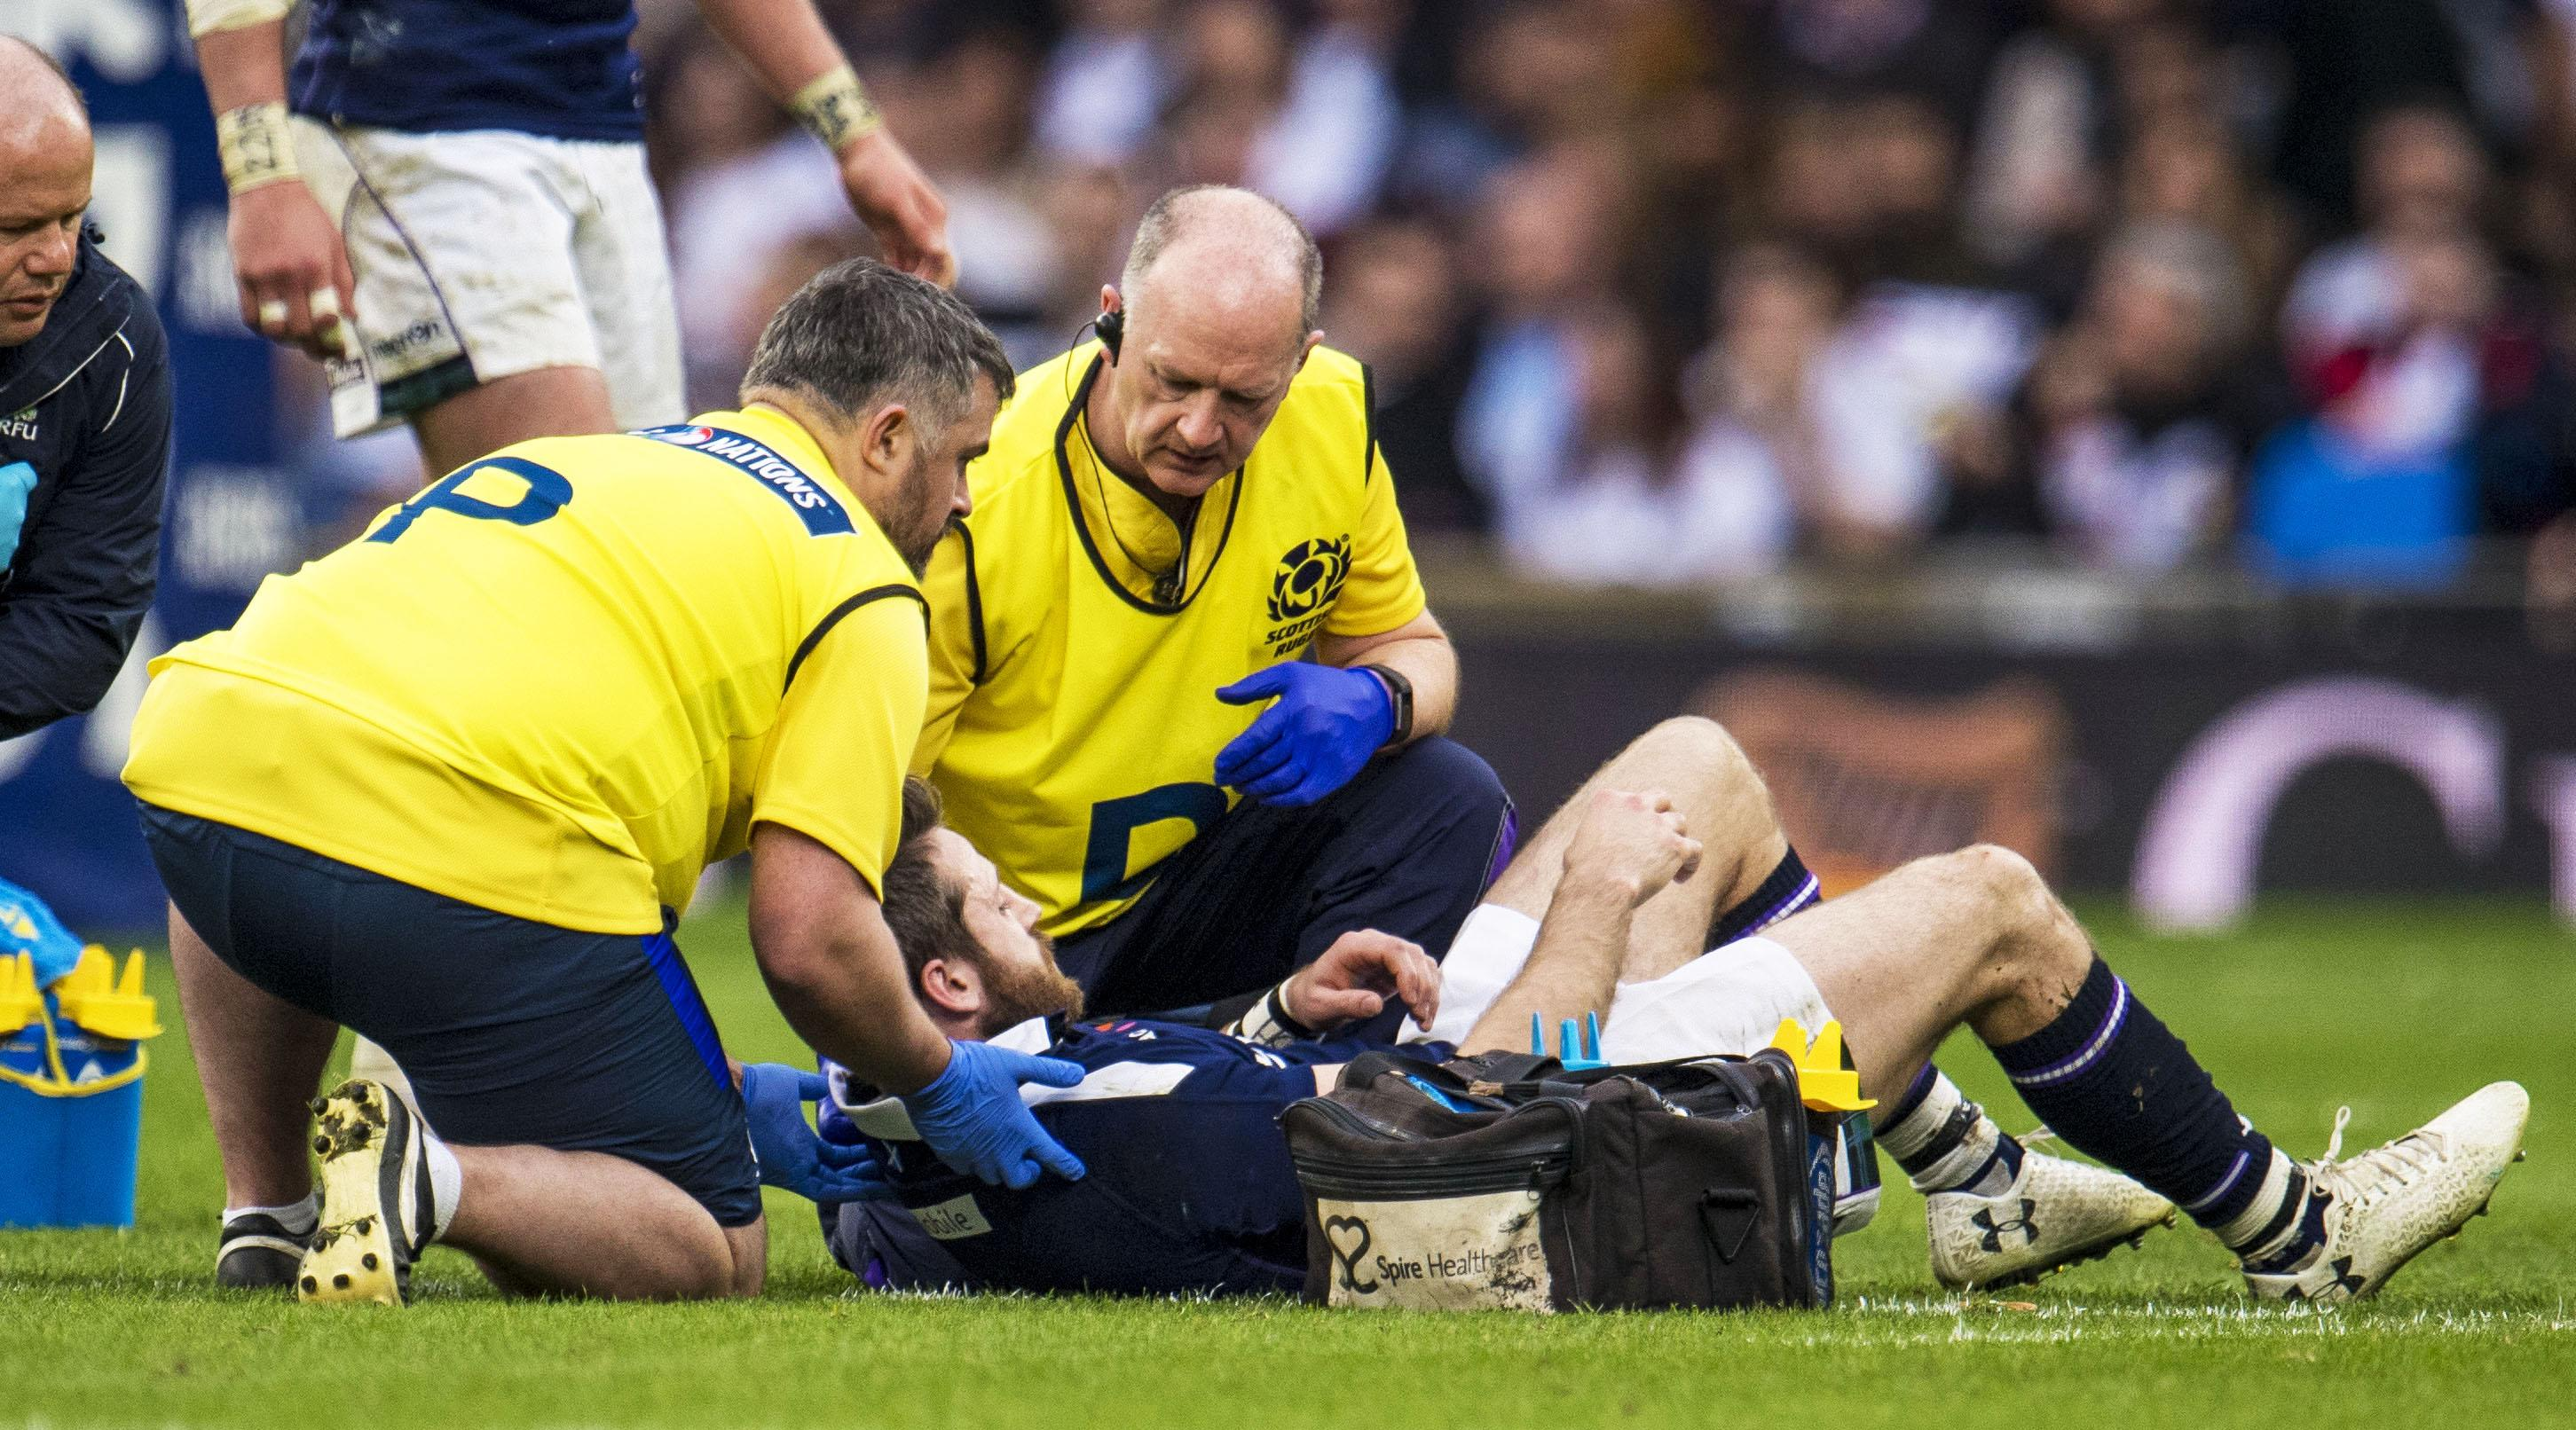 World Rugby Level 1: First Aid in Rugby - BT